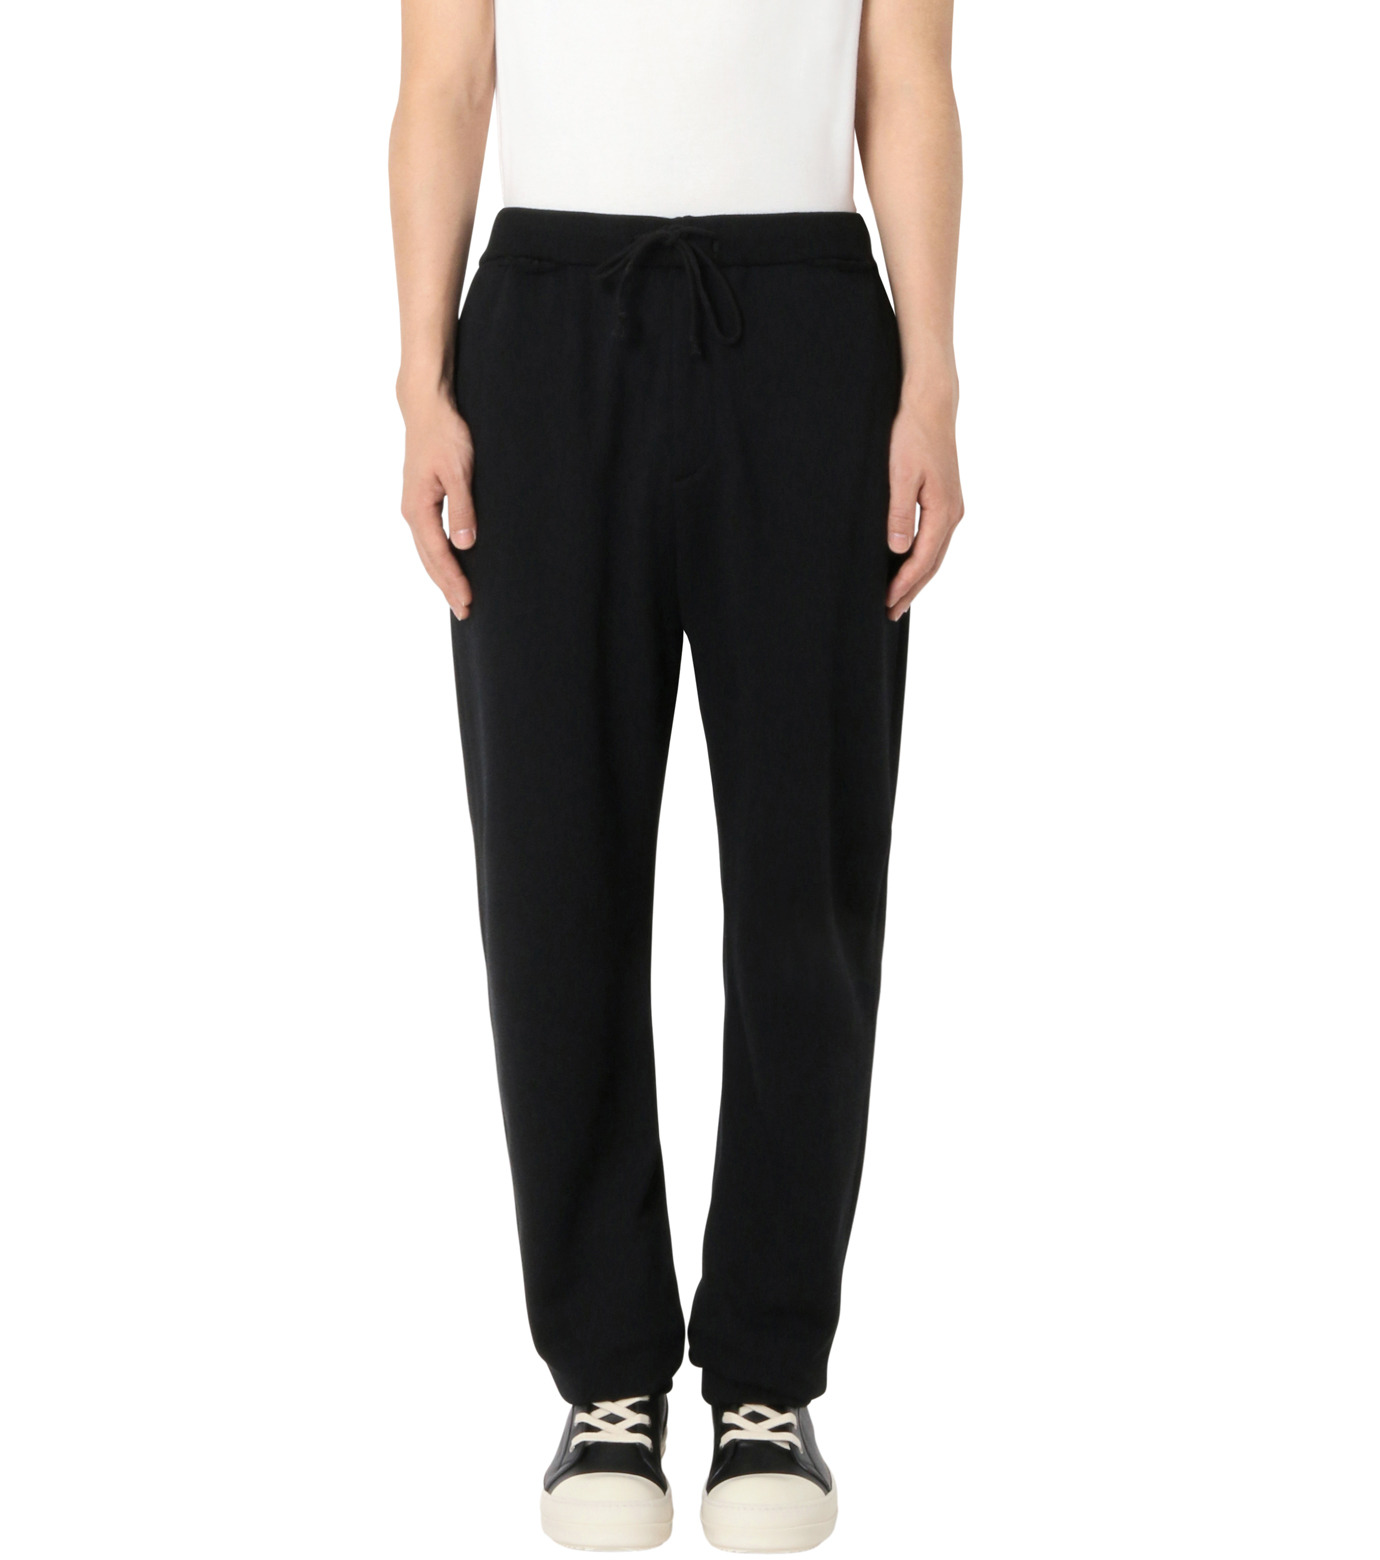 DRESSEDUNDRESSED(ドレスドアンドレスド)のDamaged Drawstring Trackpants-BLACK-DUW16352-13 拡大詳細画像1